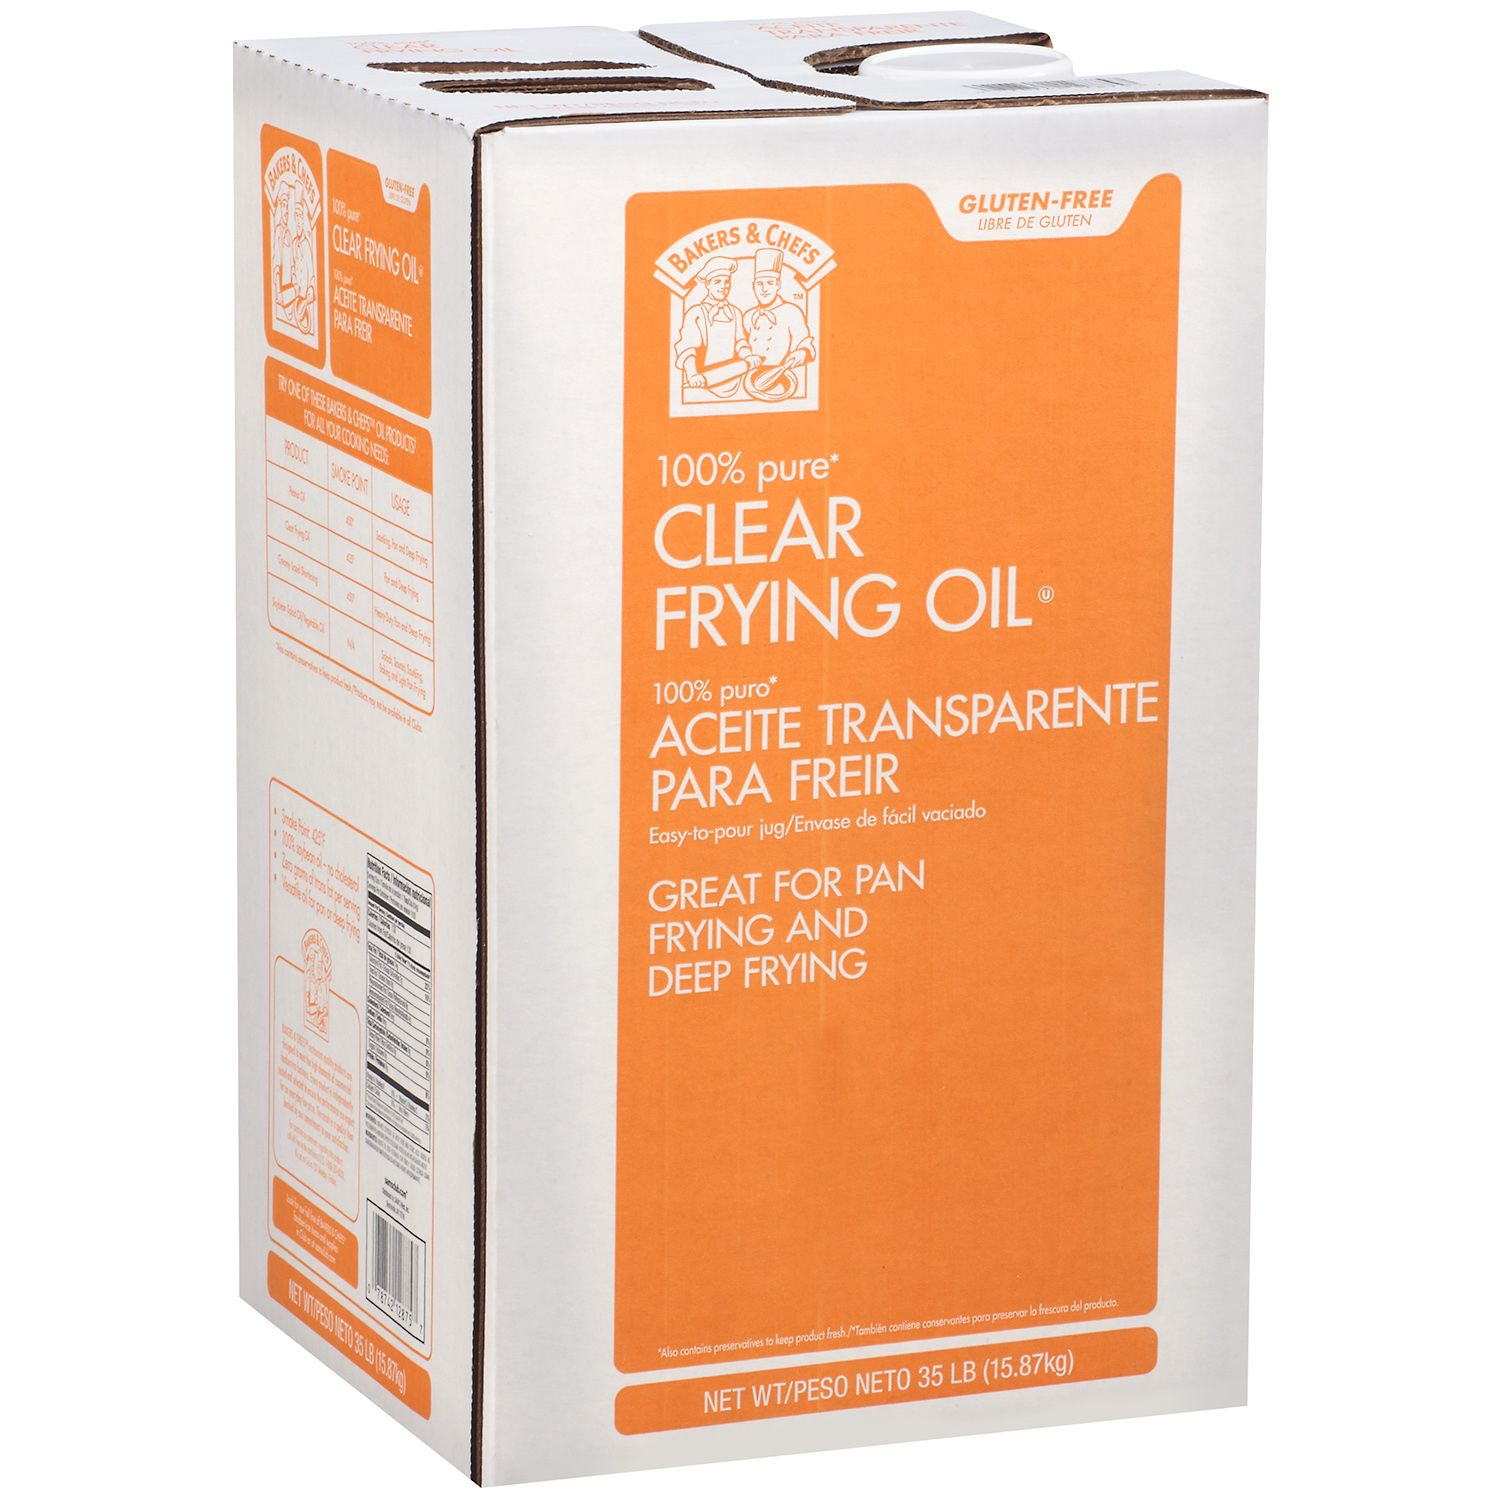 Bakers & Chef's Bakers & Chefs Clear Frying Oil - 35 lbs. at Sears.com